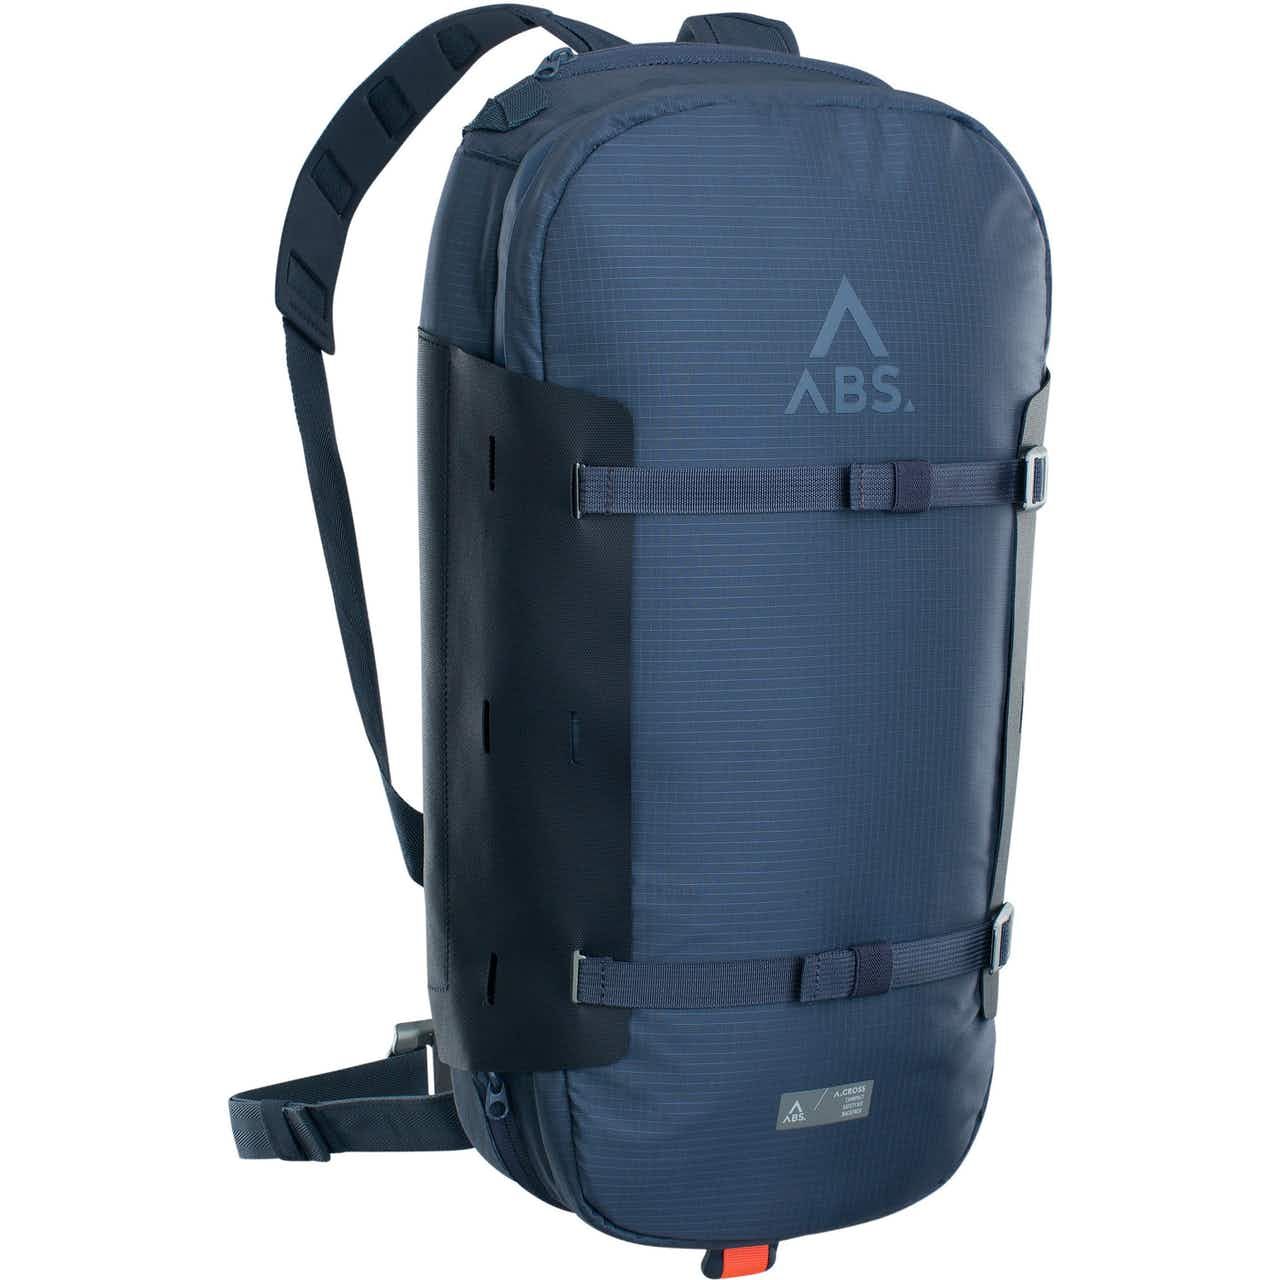 ABS A.CROSS small Tourenrucksack